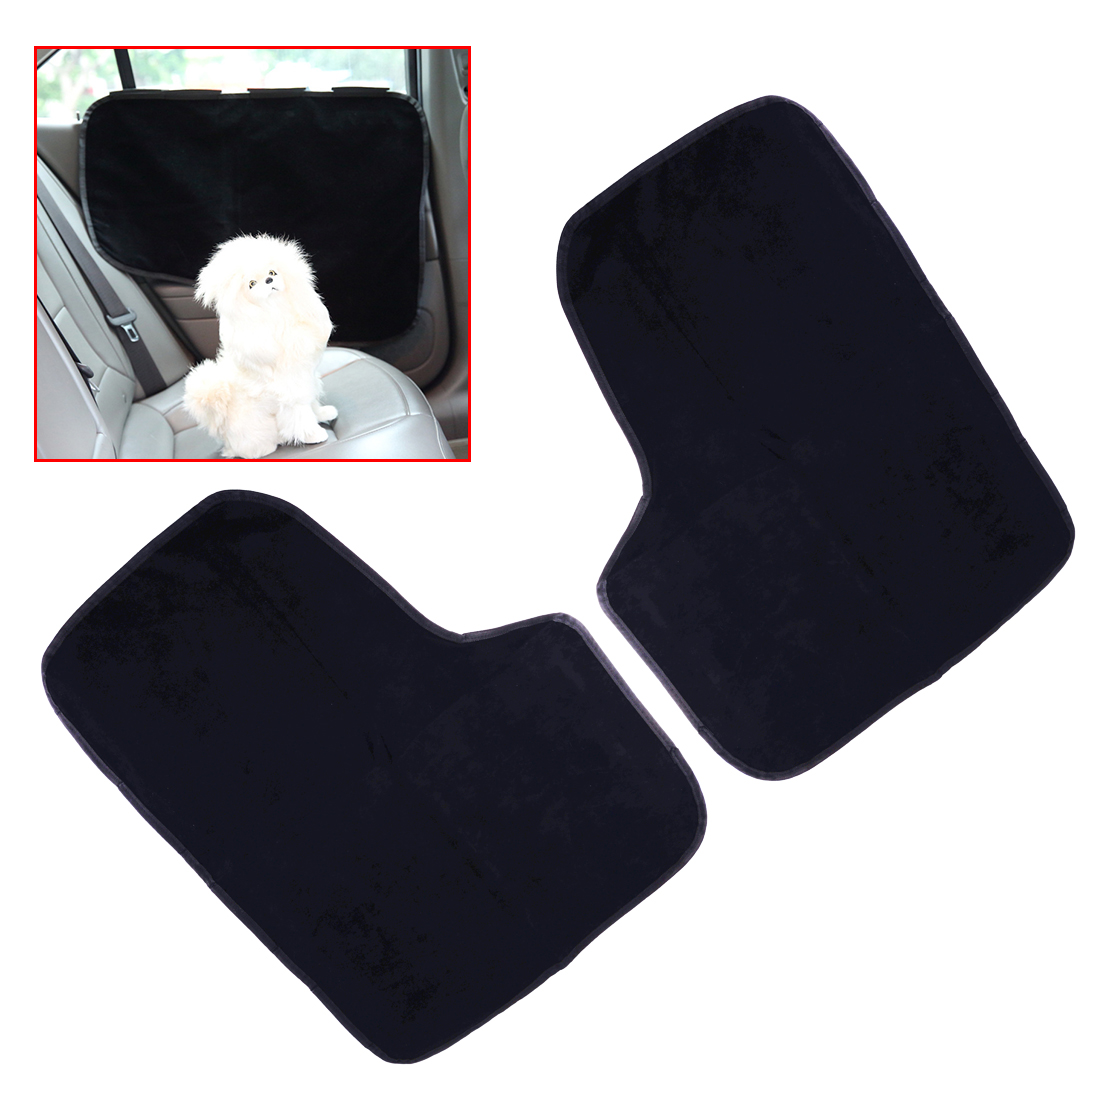 Beler 2pcs Black Car Door Side Guard Border Seat Cover